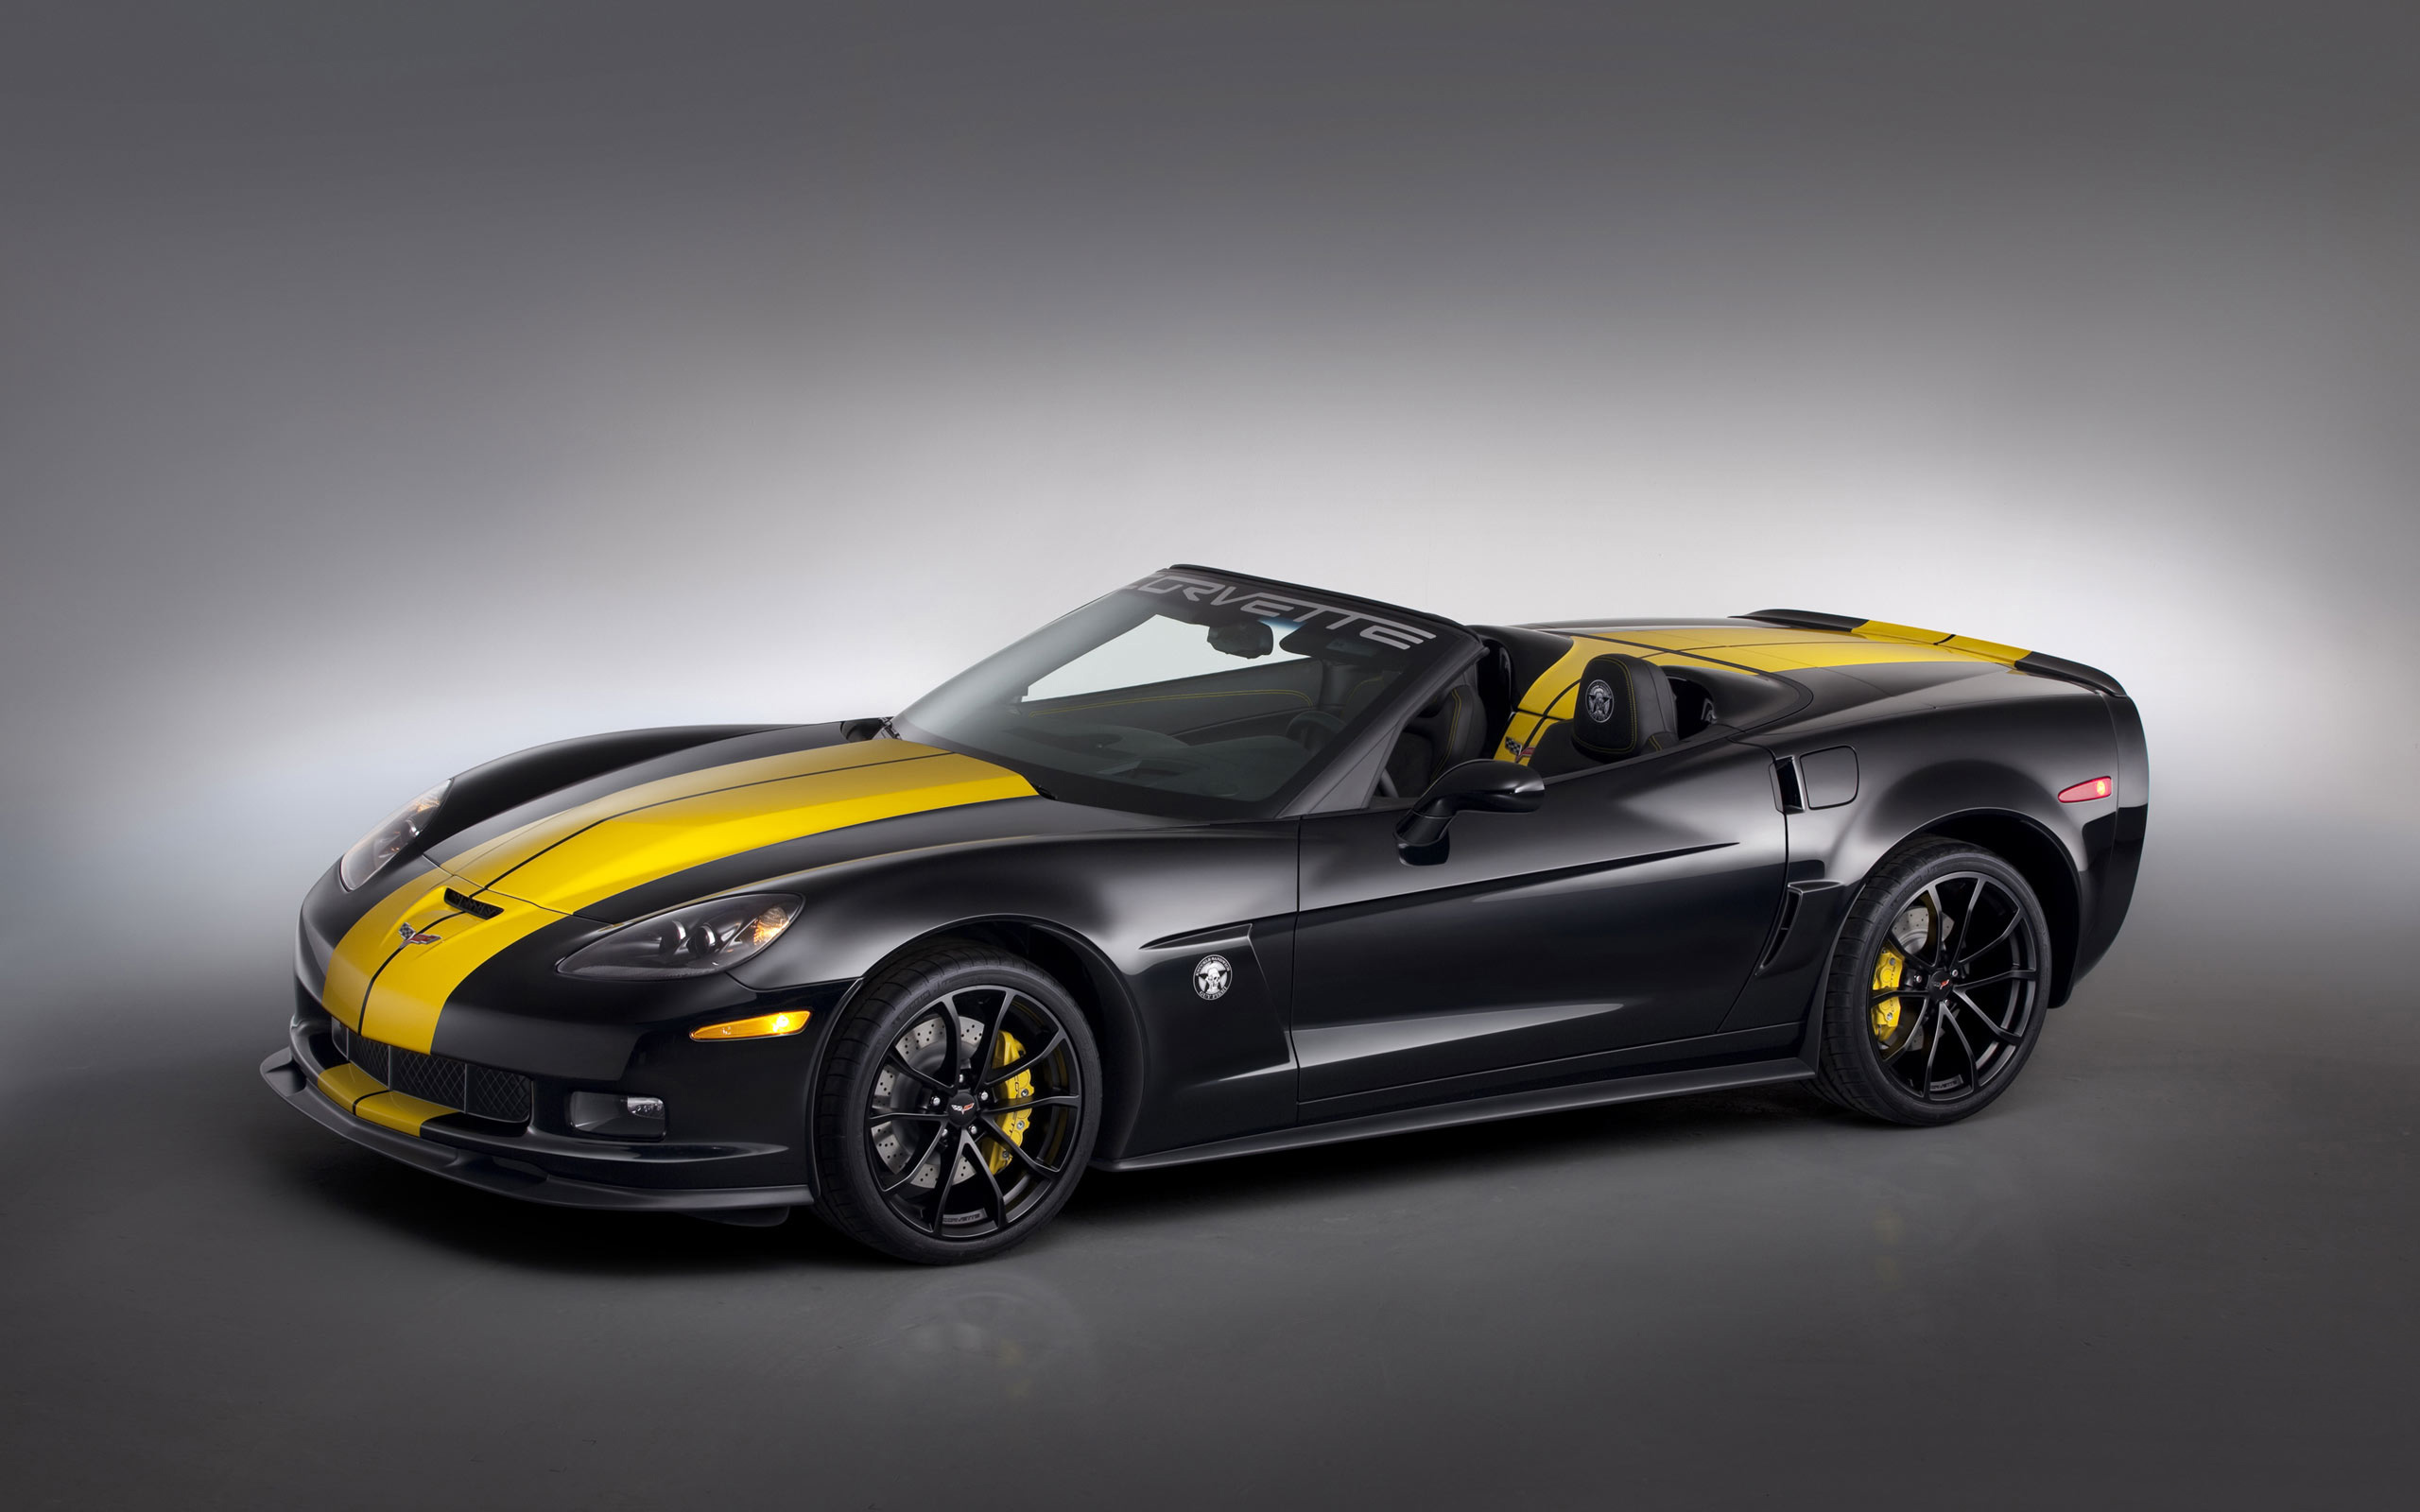 2013 chevy corvette 427 convertible wallpaper hd car. Black Bedroom Furniture Sets. Home Design Ideas